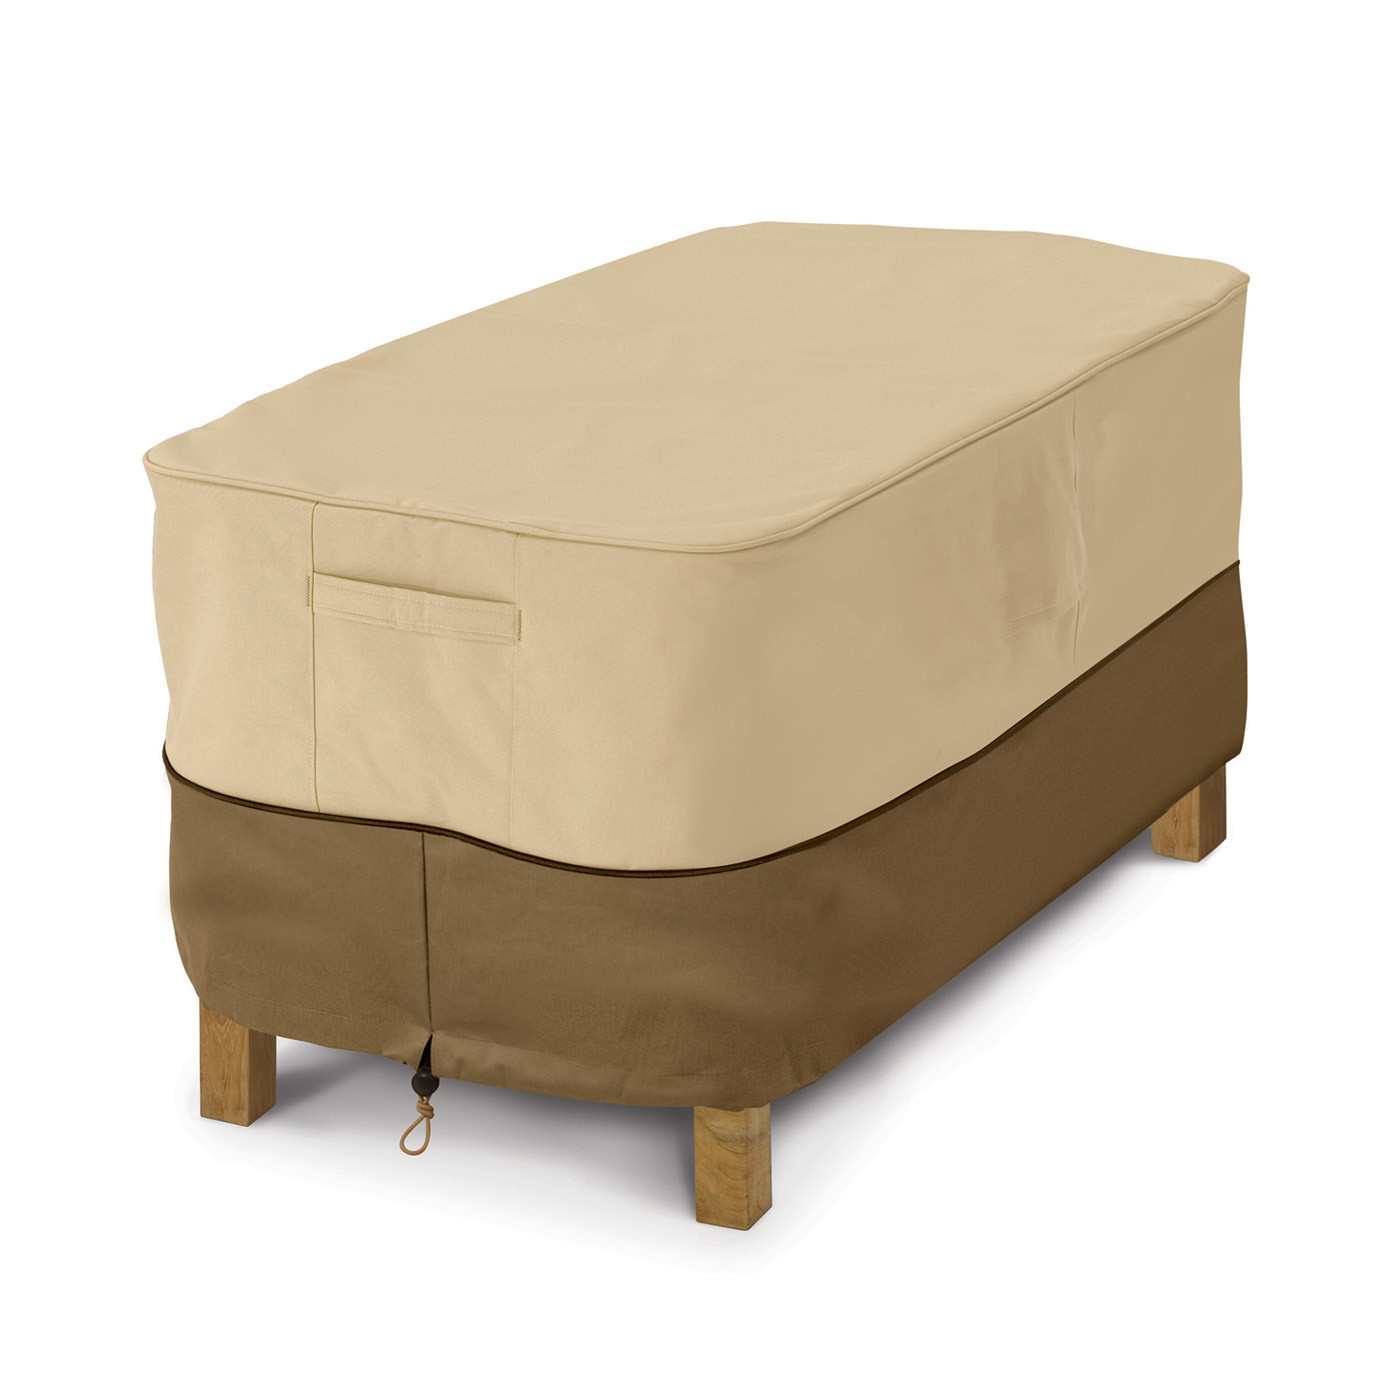 Best ideas about Patio Table Cover . Save or Pin Classic Accessories 55 121 00 Veranda Rectangular Now.